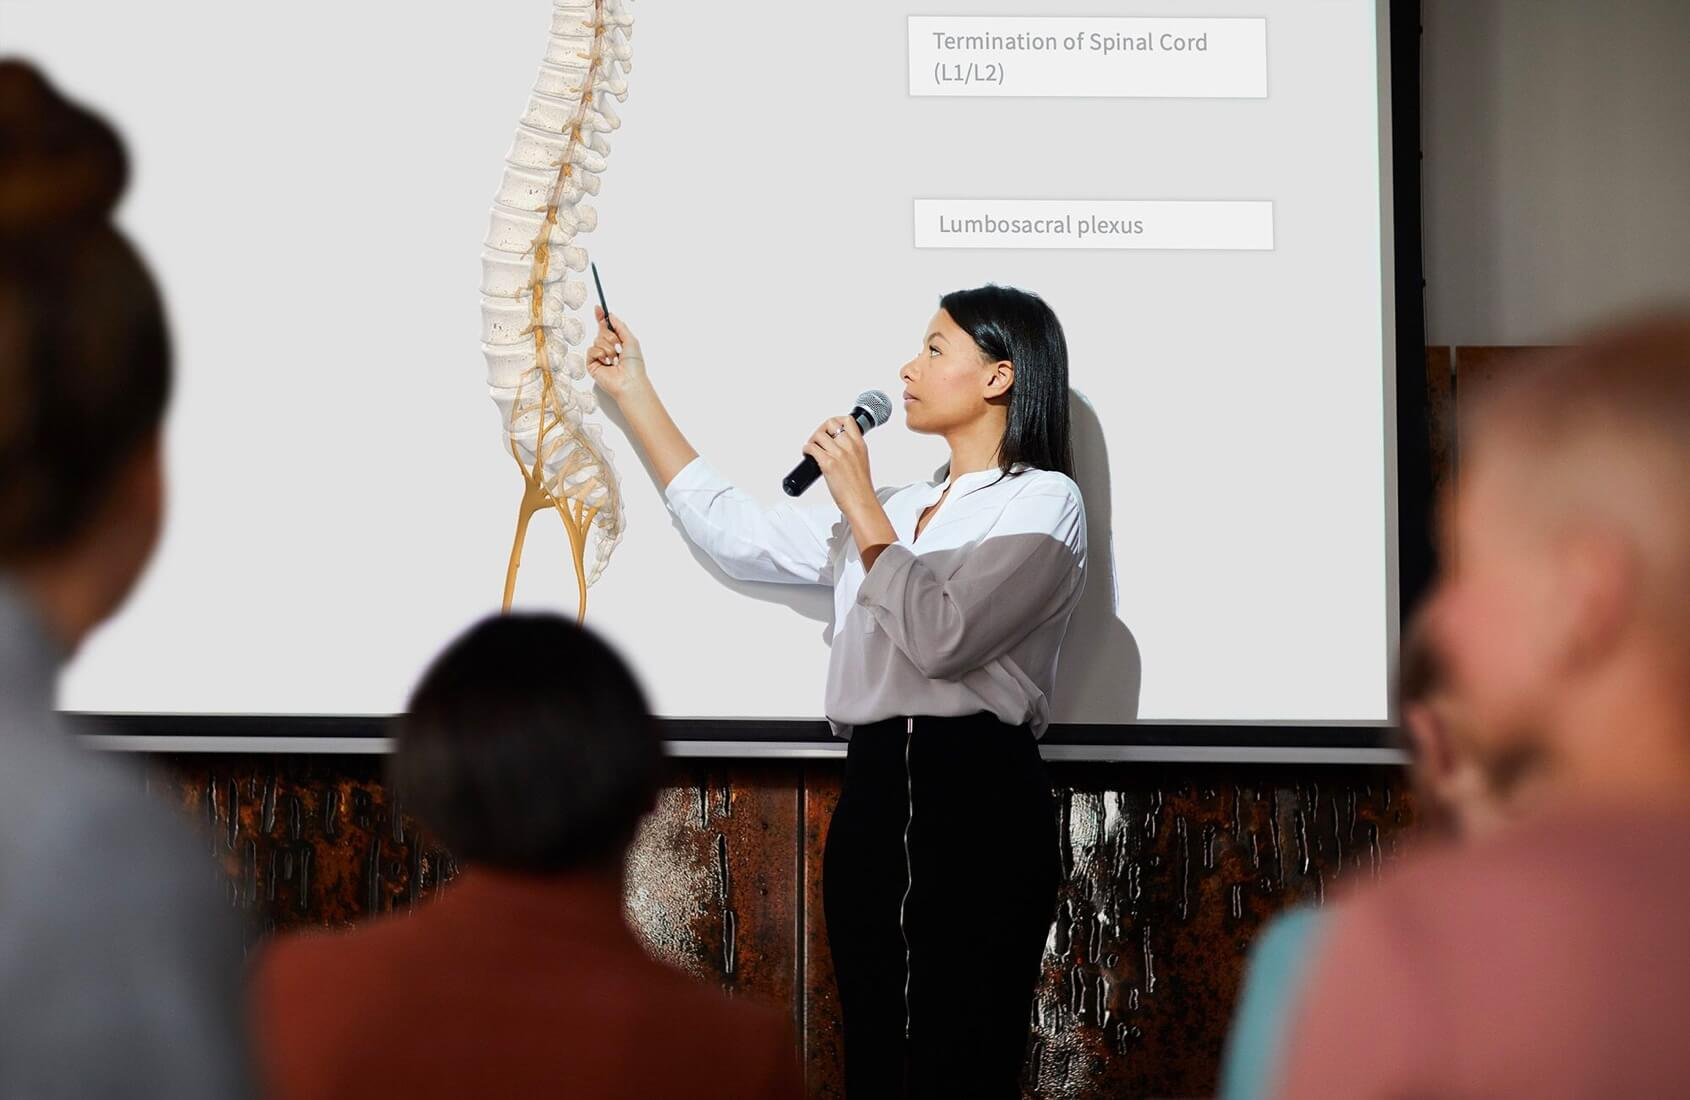 3D Anatomy in the classroom